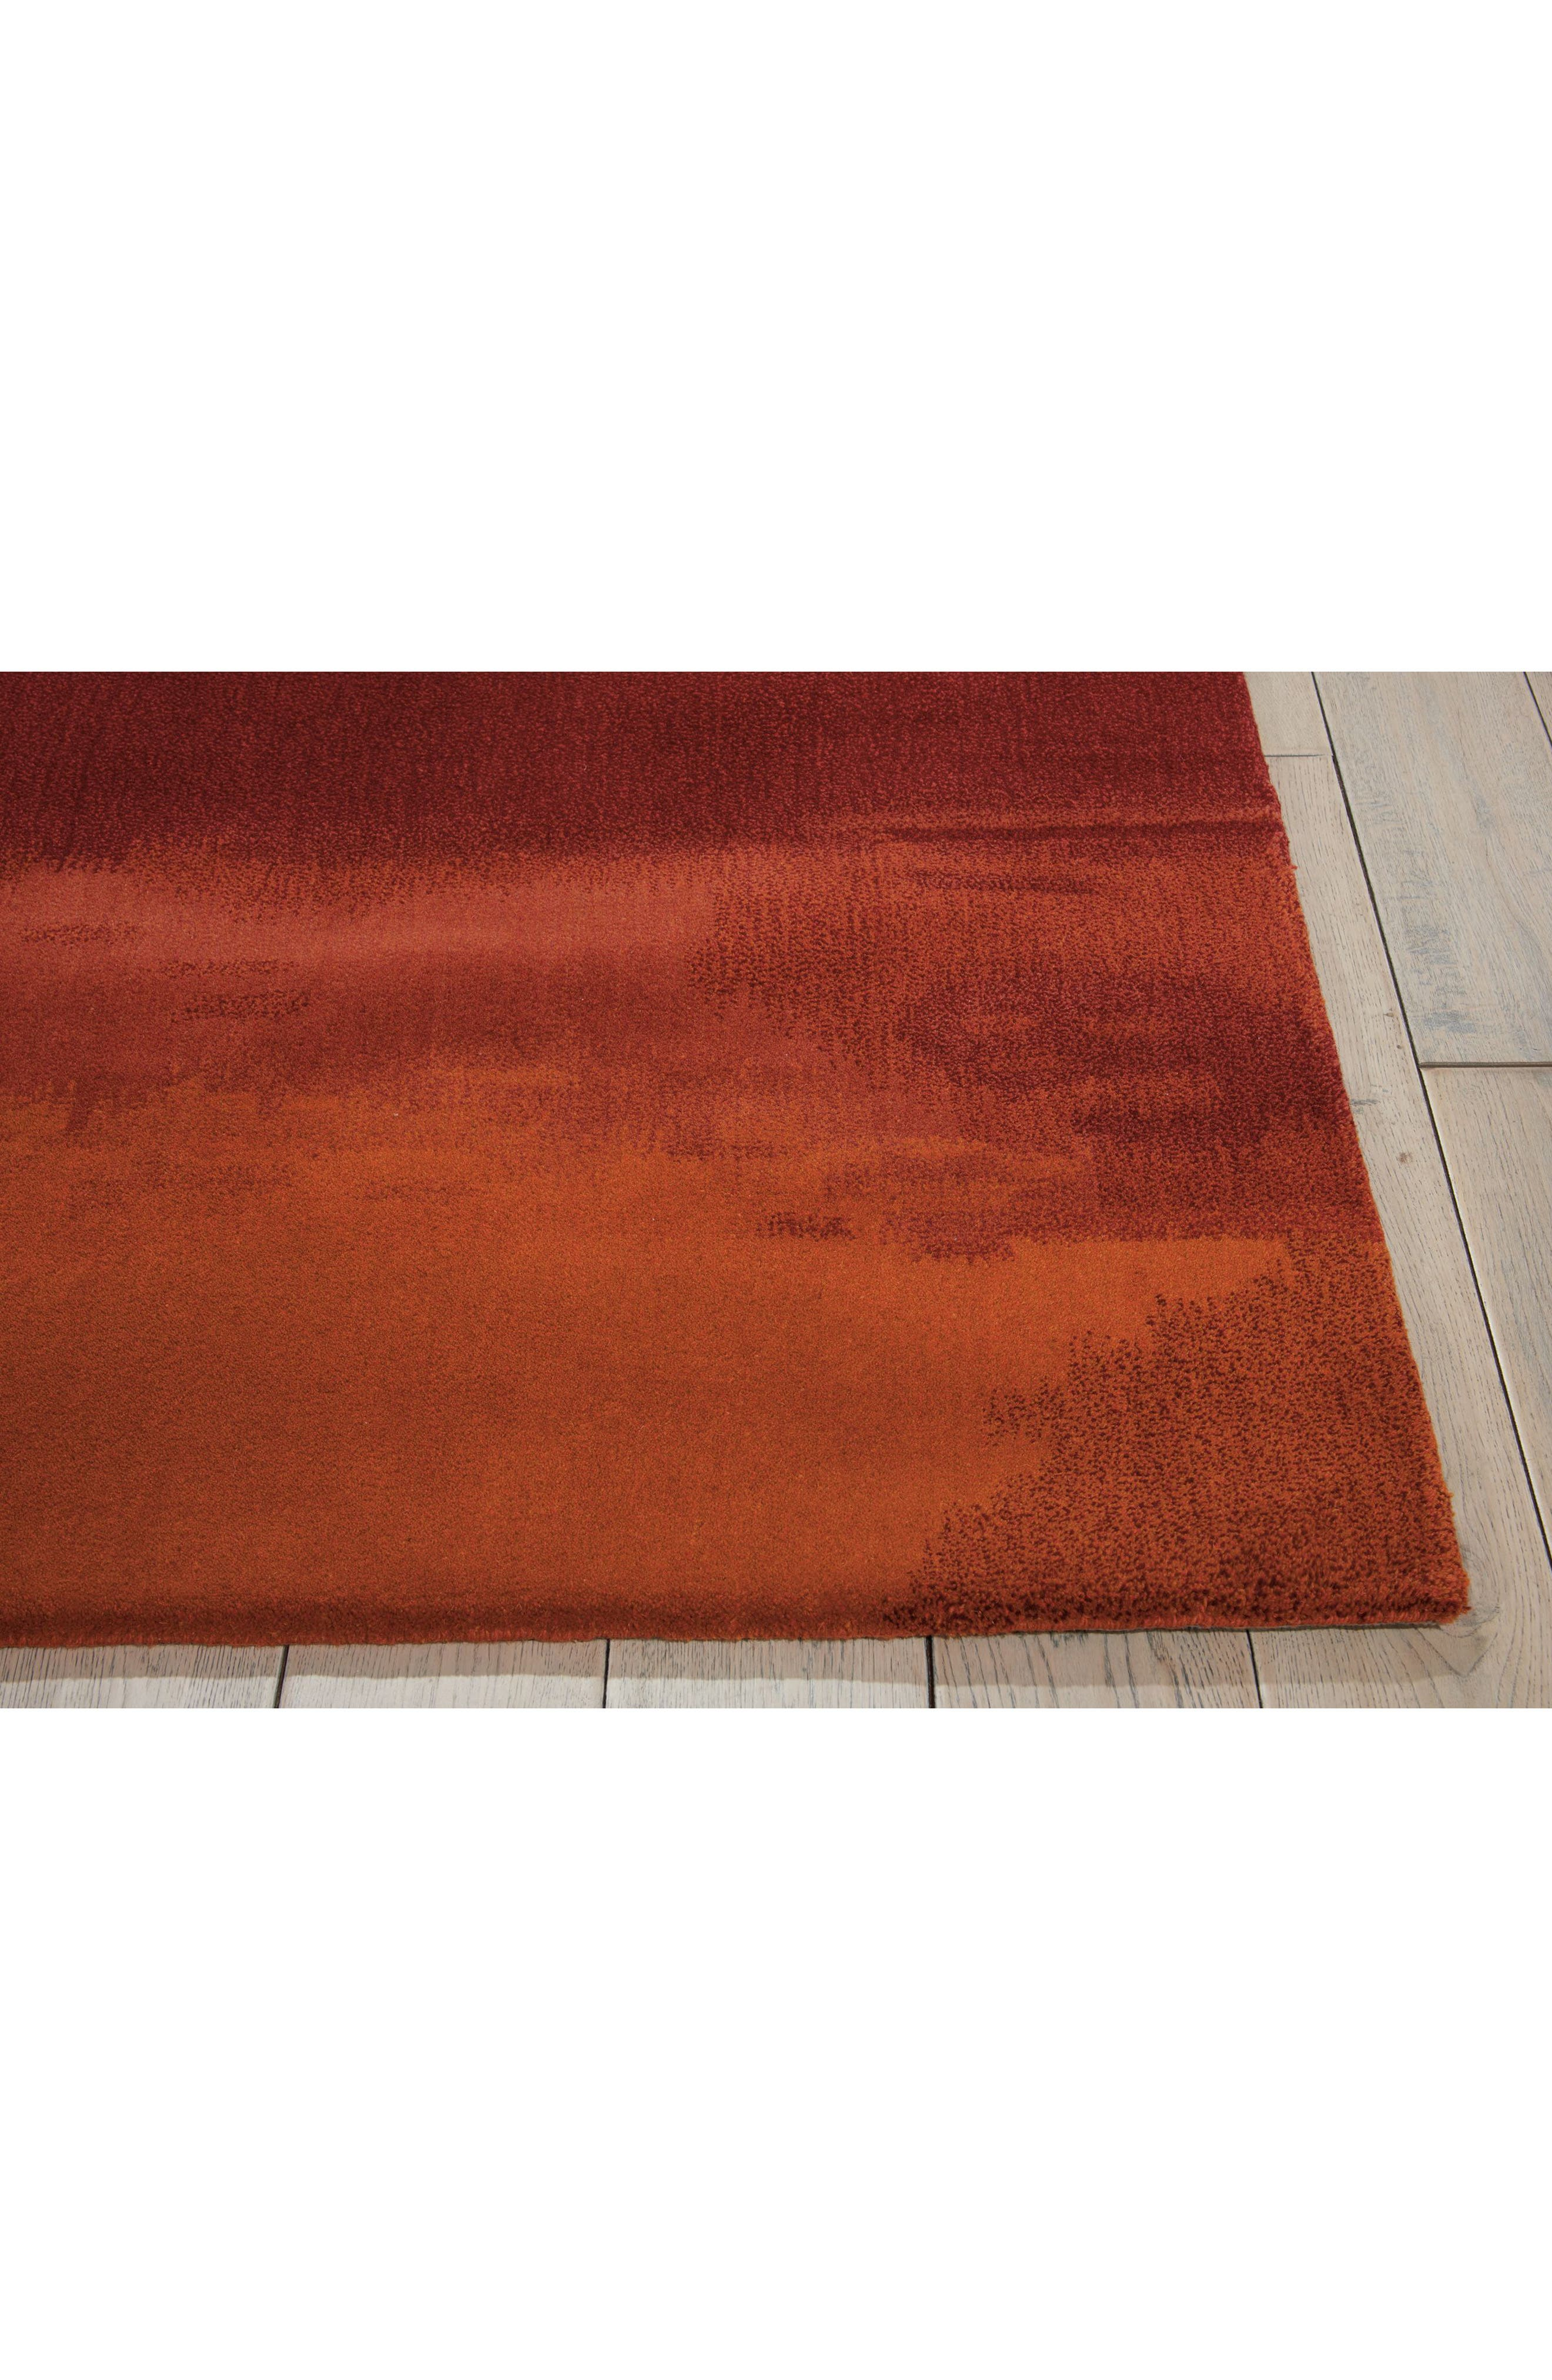 Luster Wash Wool Area Rug,                             Alternate thumbnail 24, color,